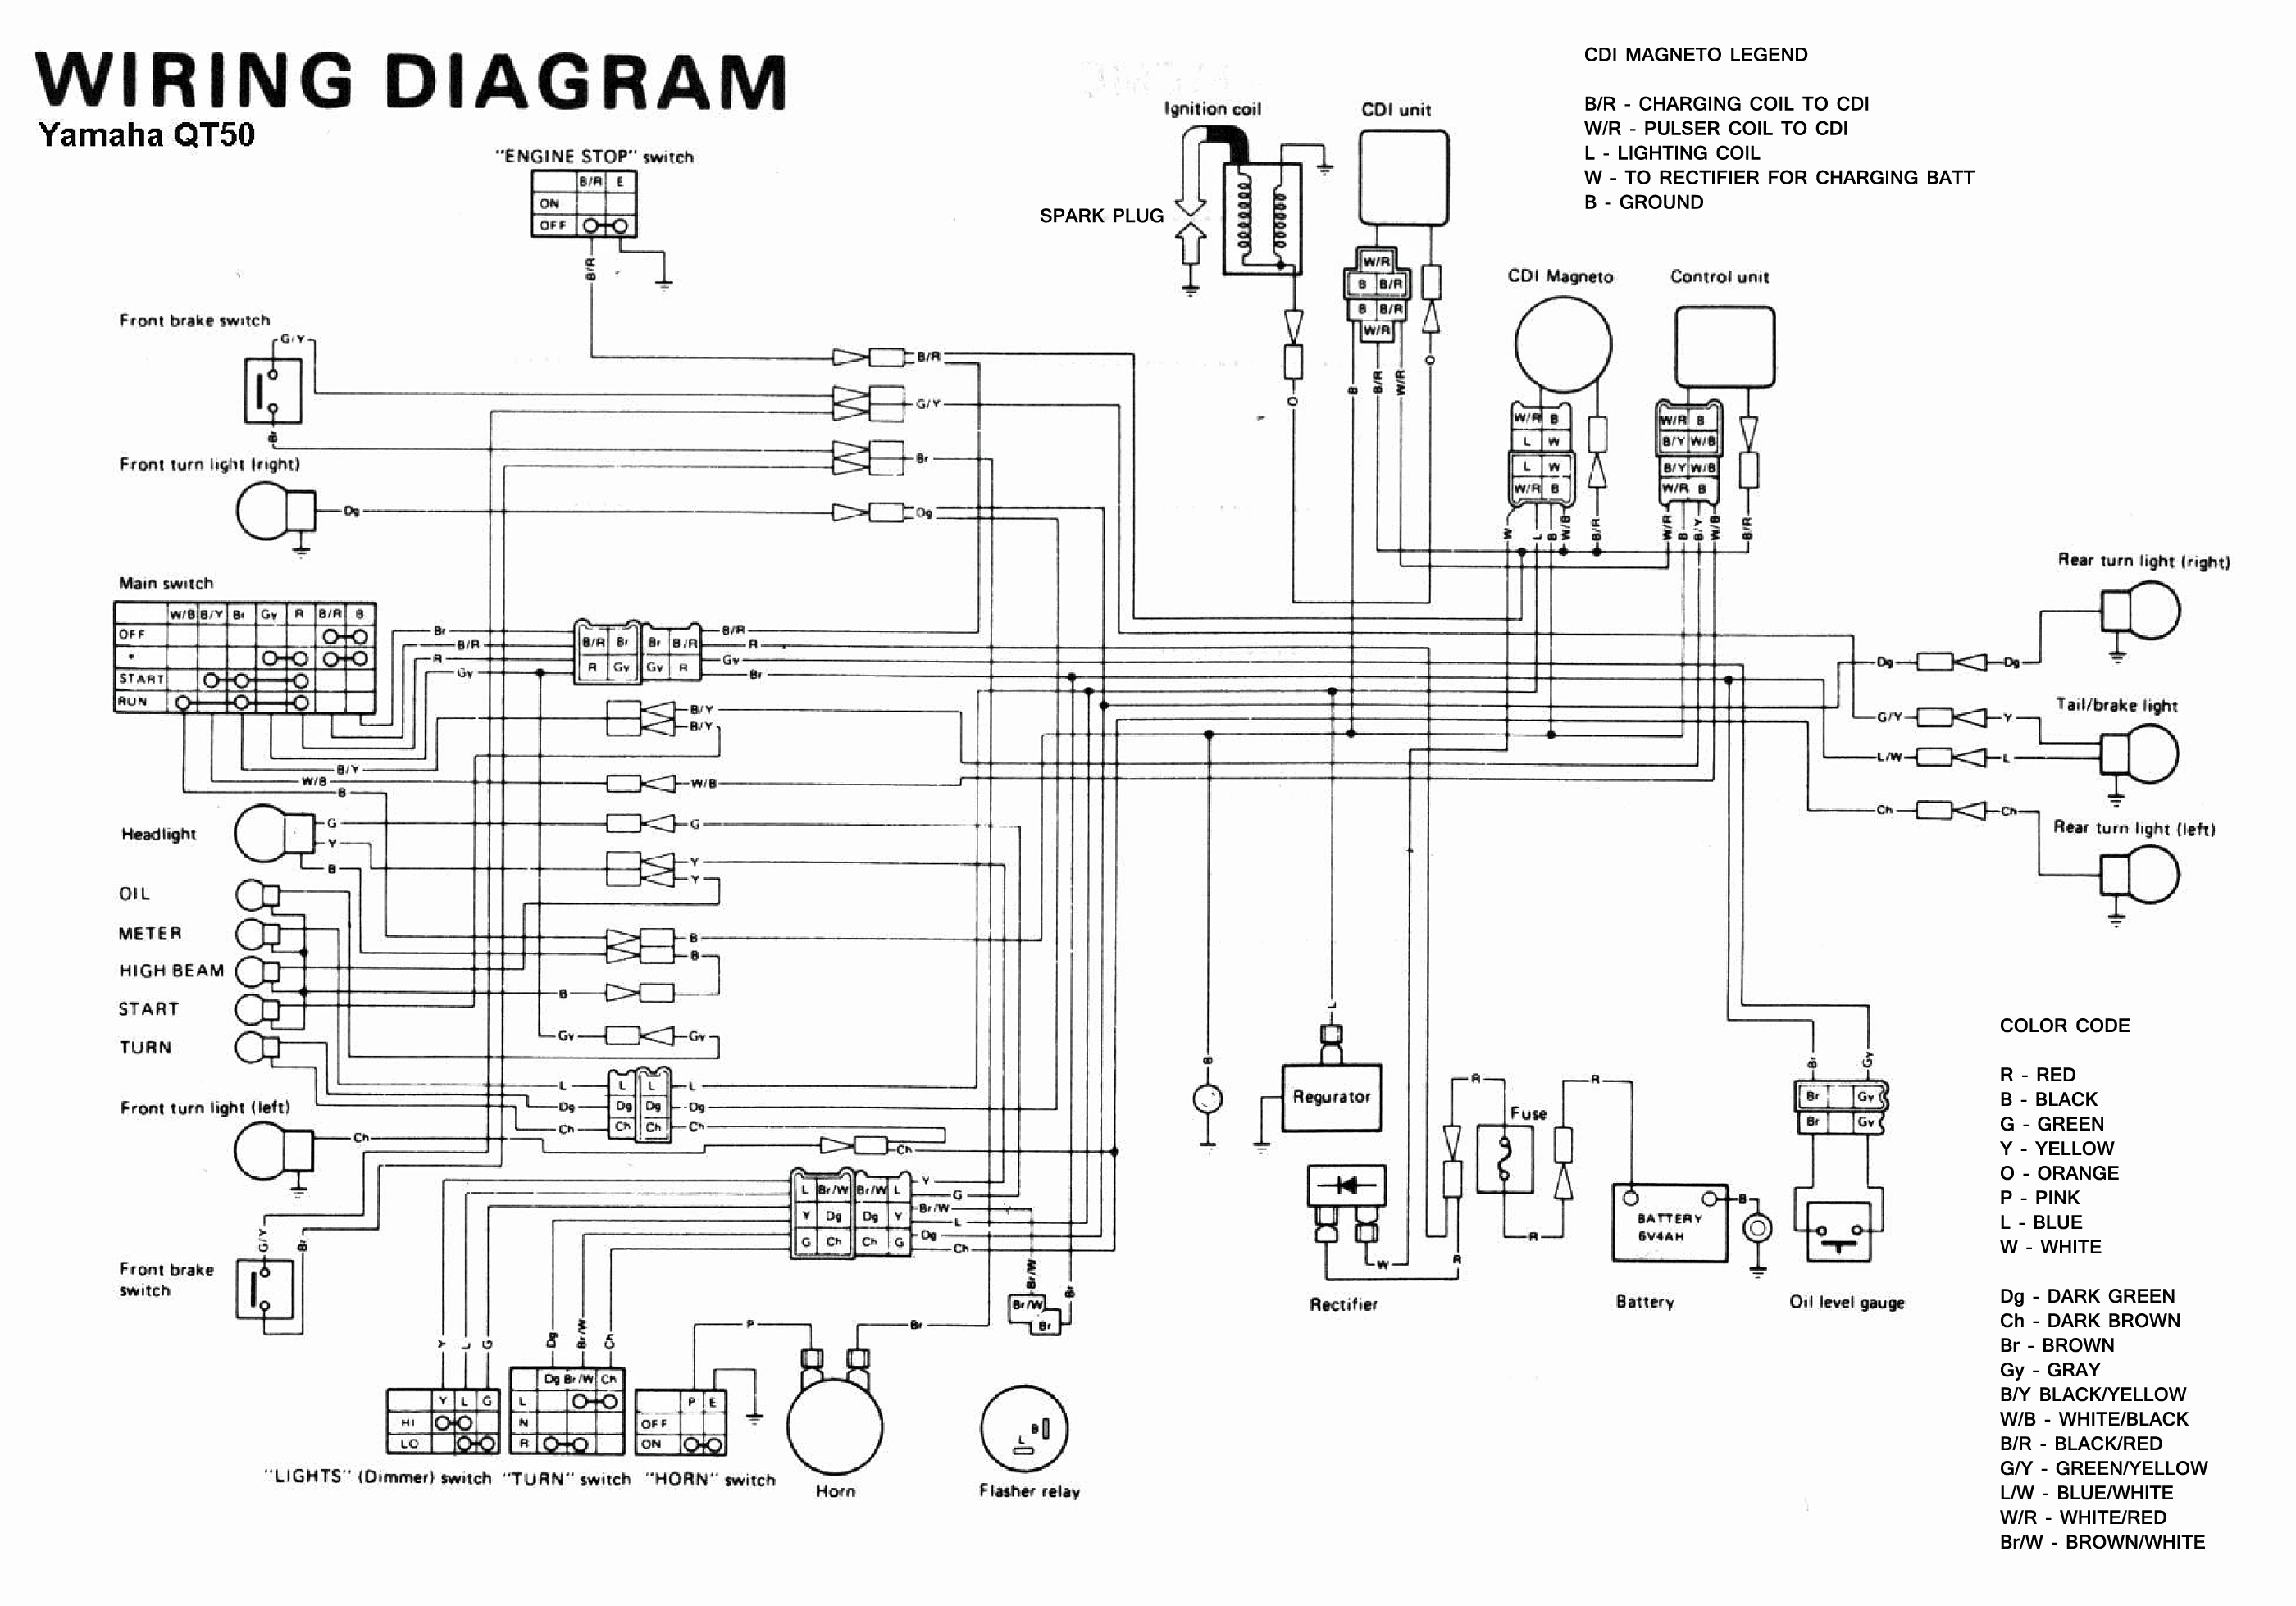 Yamaha Wiring Diagrams | Wiring Diagram on